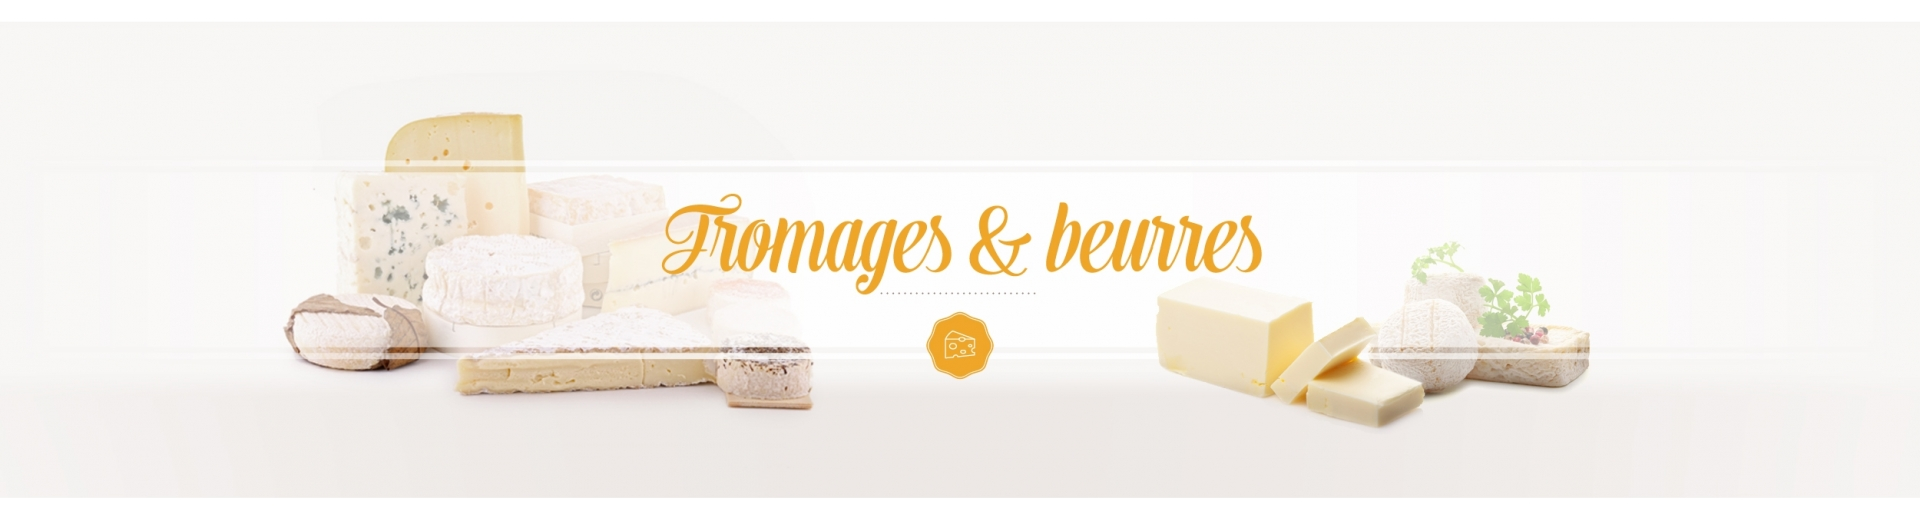 Fromages & Beurres